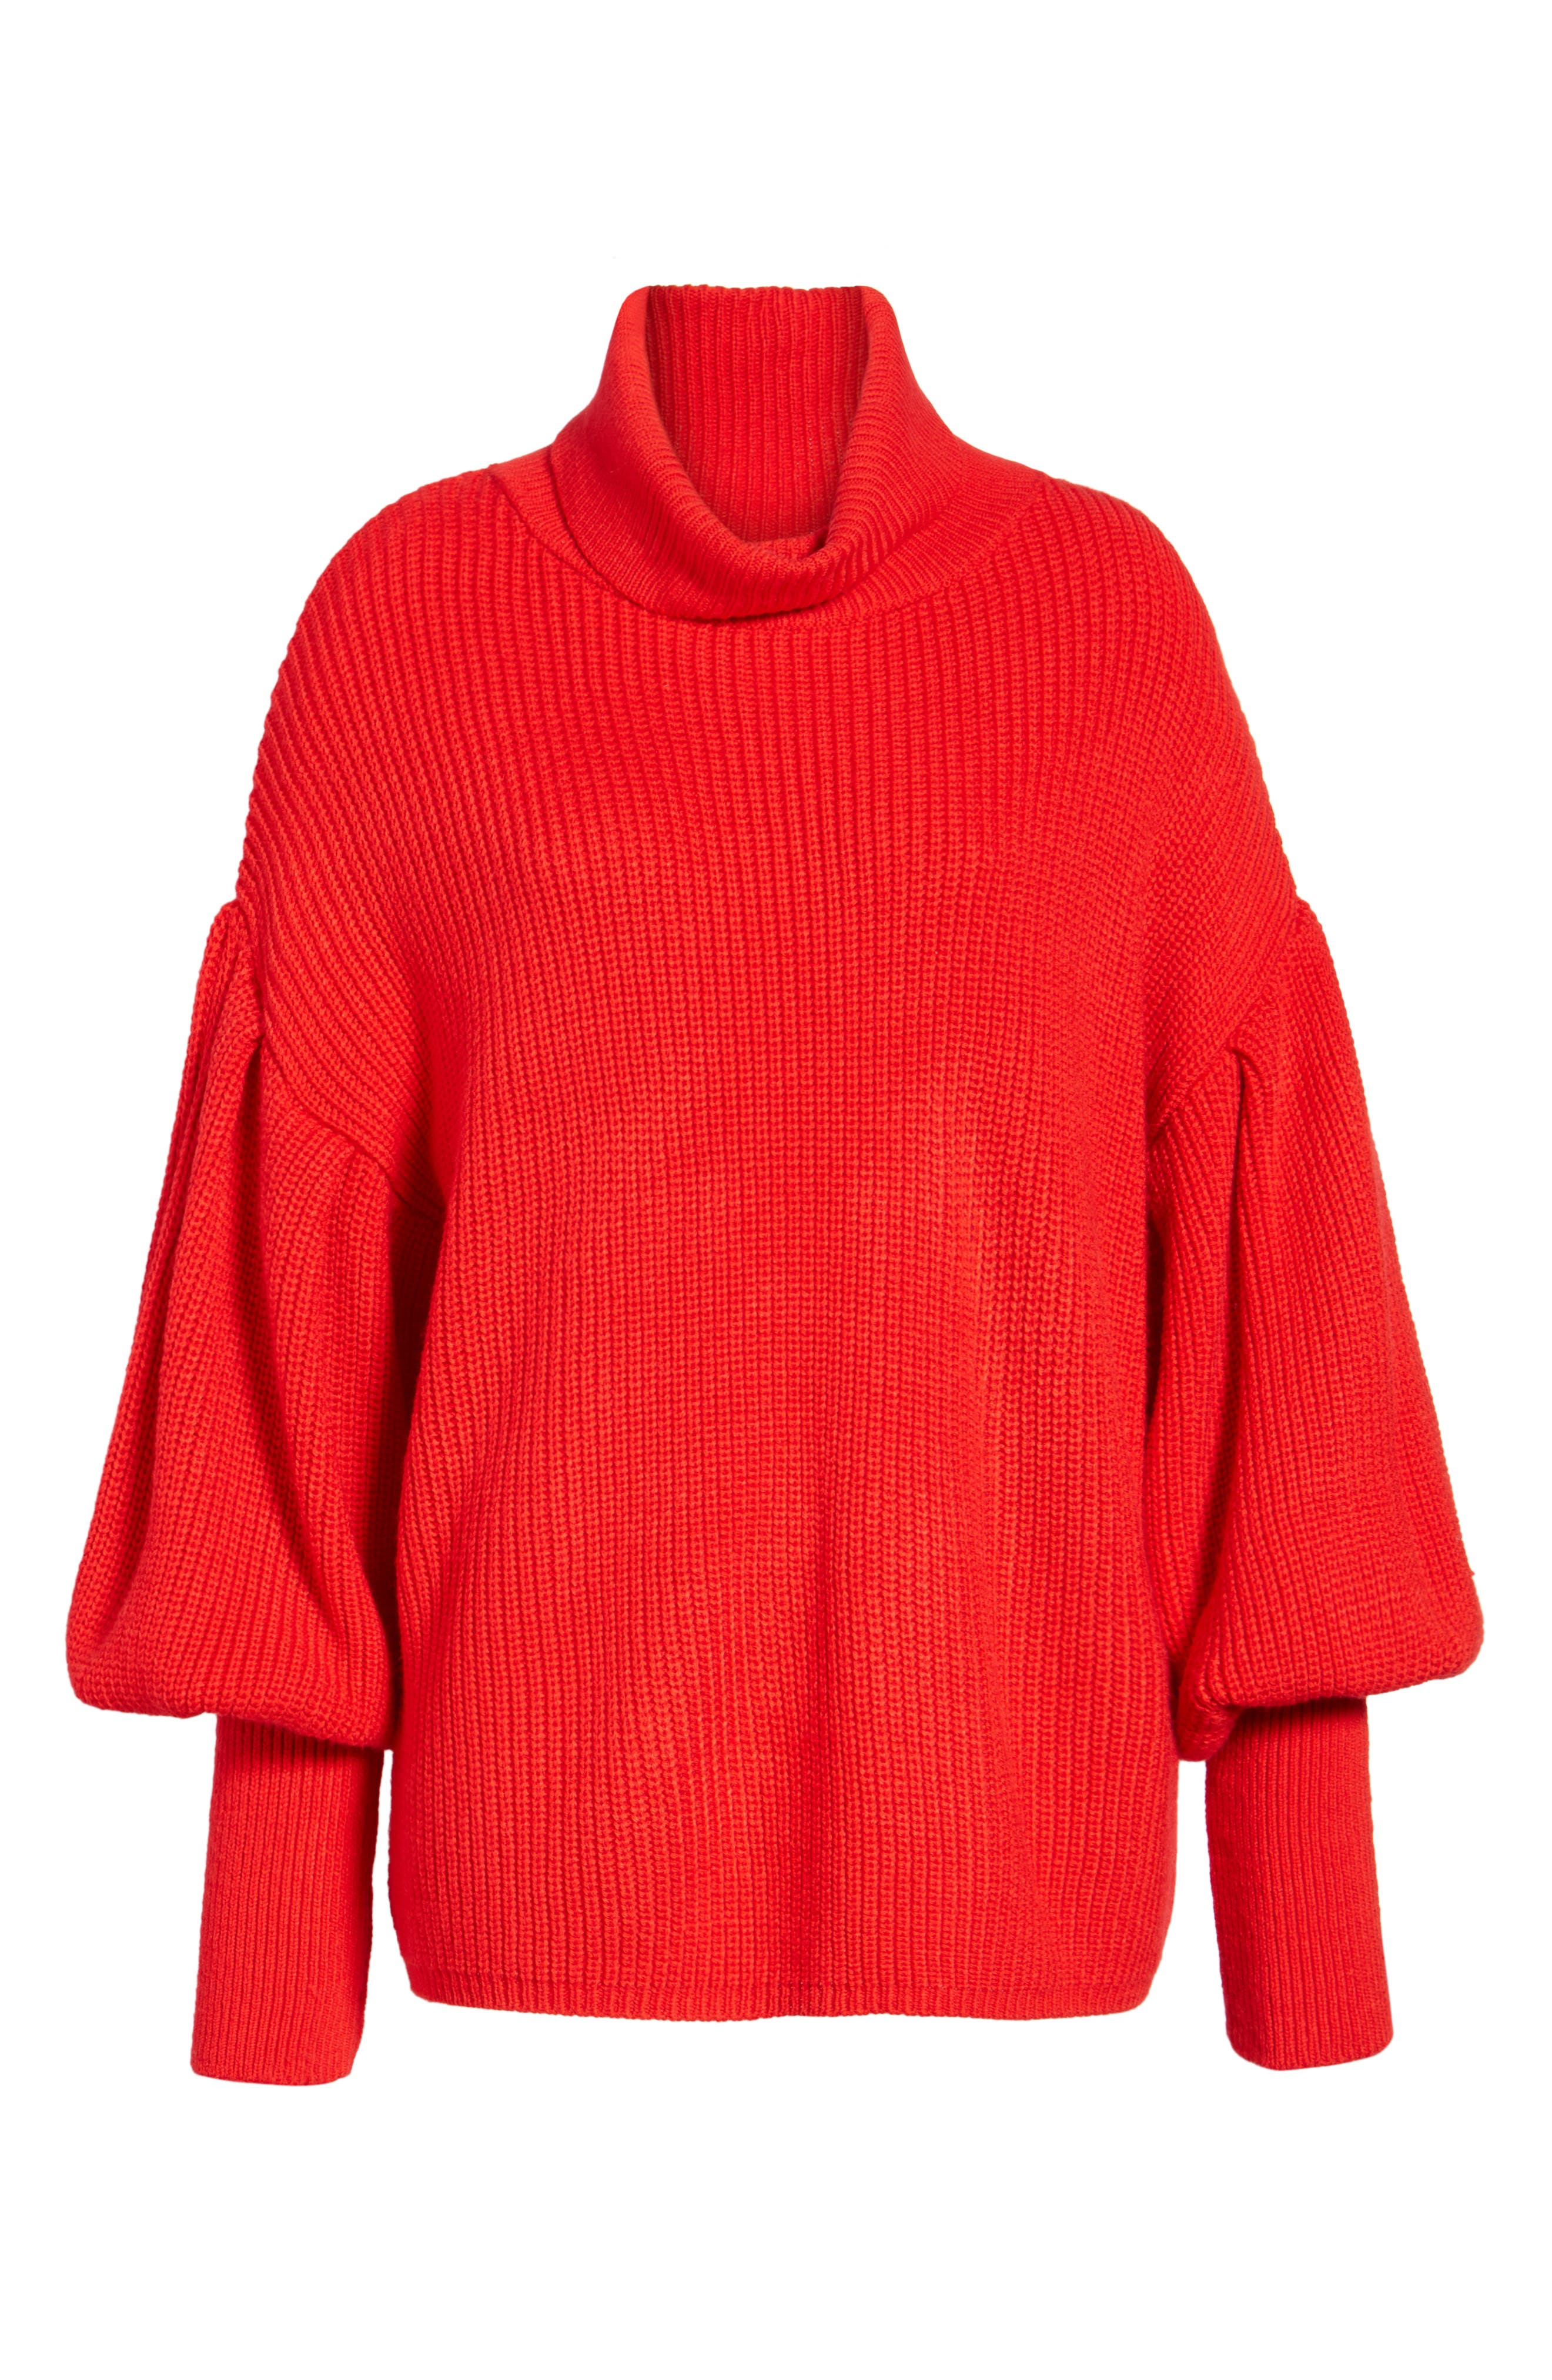 Balloon Sleeve Turtleneck Sweater,                             Alternate thumbnail 8, color,                             Red